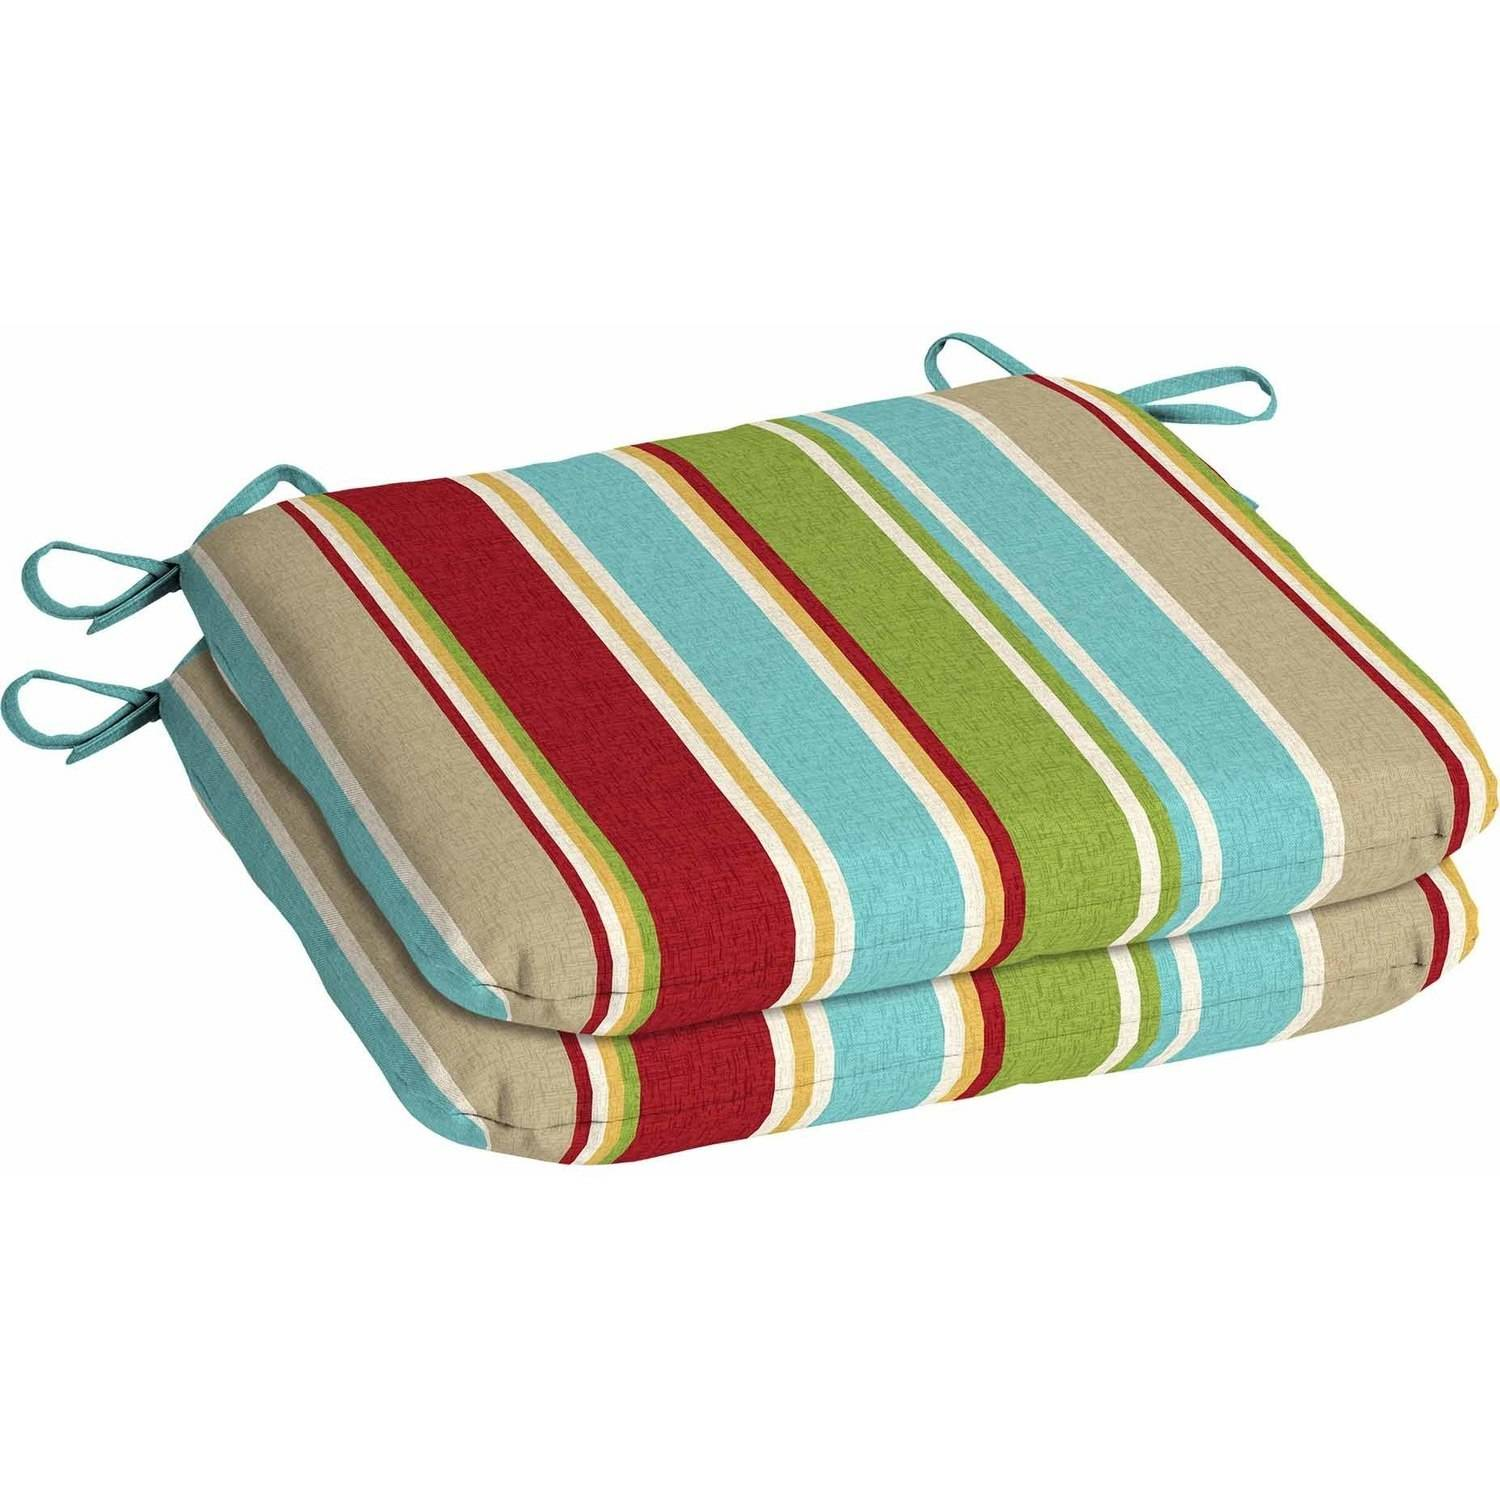 Mainstays Outdoor Patio Seat Pad, Set of 2, Grey Stripe